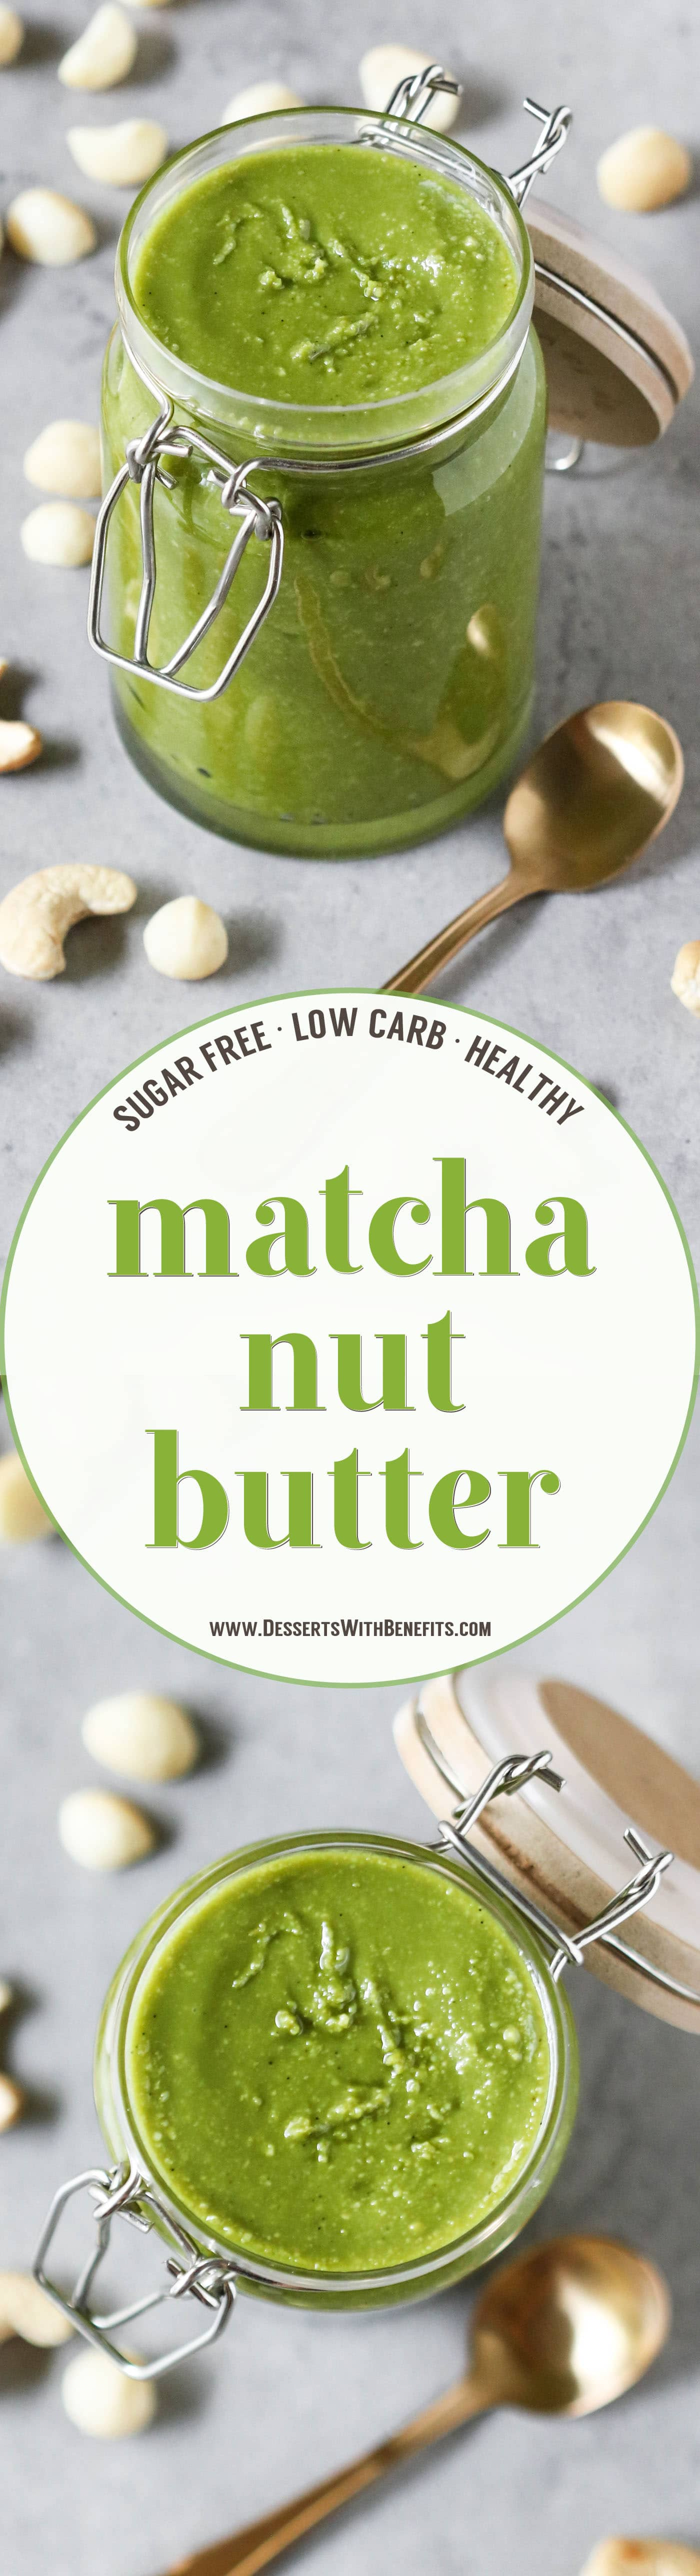 This 5-ingredient Healthy Matcha Green Tea Nut Butter is earthy from the matcha and rich and buttery from the macadamia nuts and cashews. Super easy, creamy, and addictive, yet sugar free, low carb, gluten free, dairy free, and vegan. It's just begging to be dug into with a spoon!